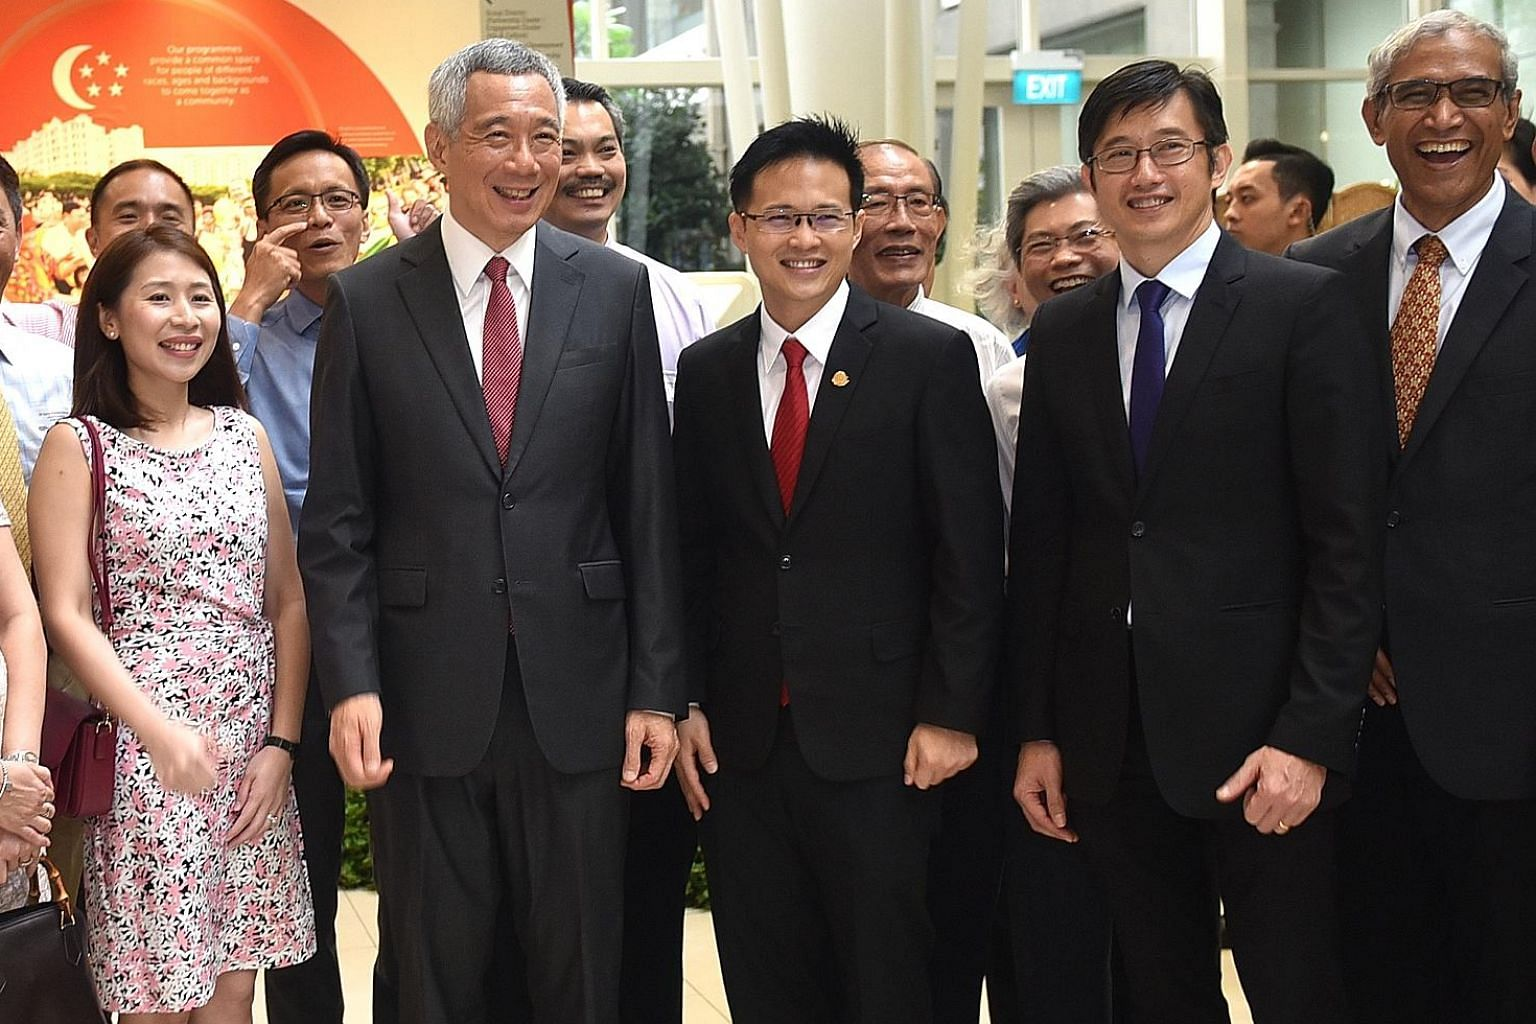 At yesterday's swearing-in ceremony for mayors helming the five CDCs were Prime Minister Lee Hsien Loong and (from his left) incoming mayor for North East District Desmond Choo, outgoing mayor Teo Ser Luck and former North East District mayor Zainul